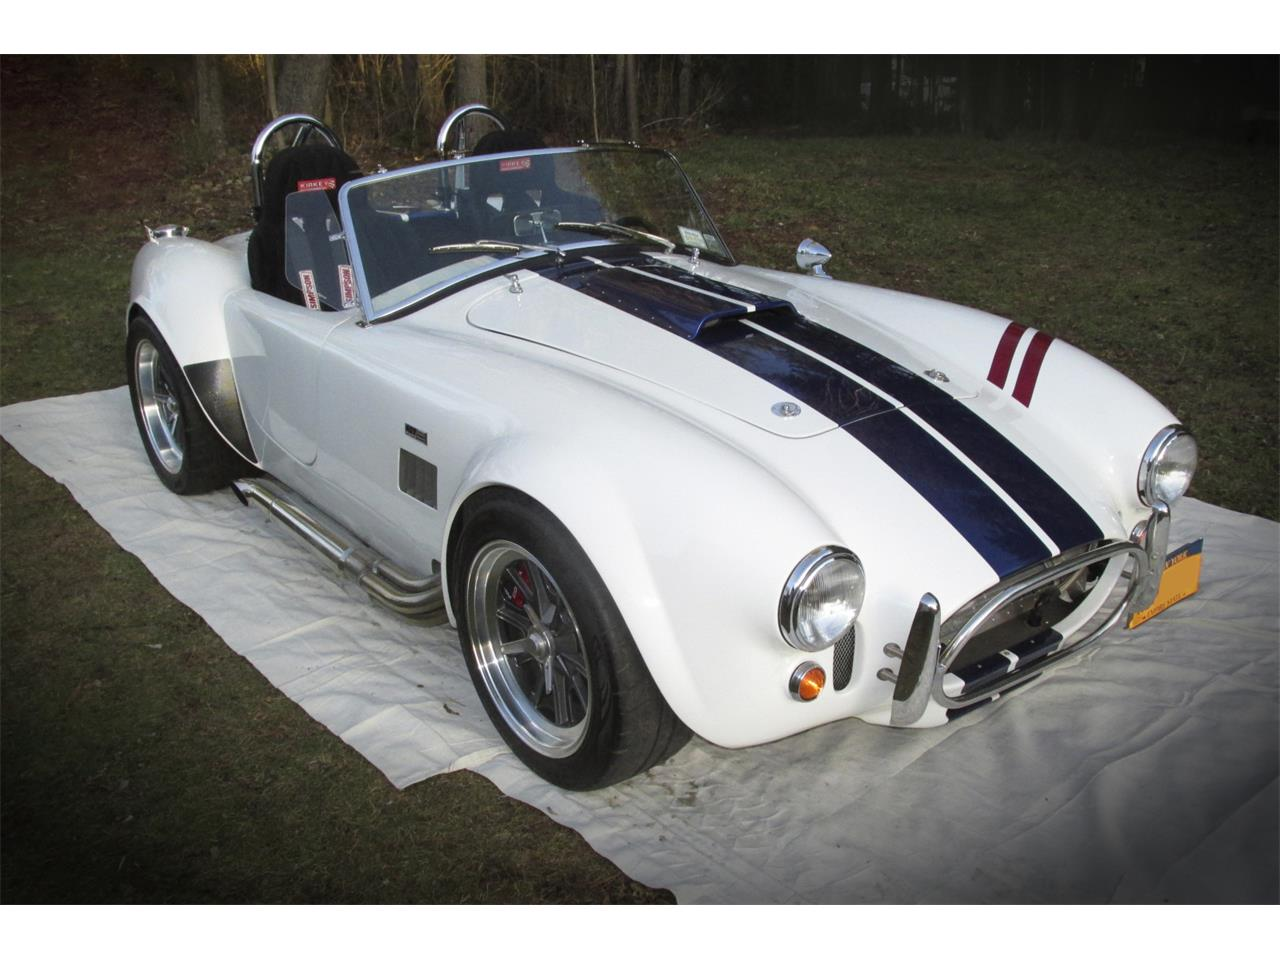 Large Picture of Classic '65 Shelby Cobra Replica located in Speculator New York - $49,000.00 Offered by a Private Seller - N693